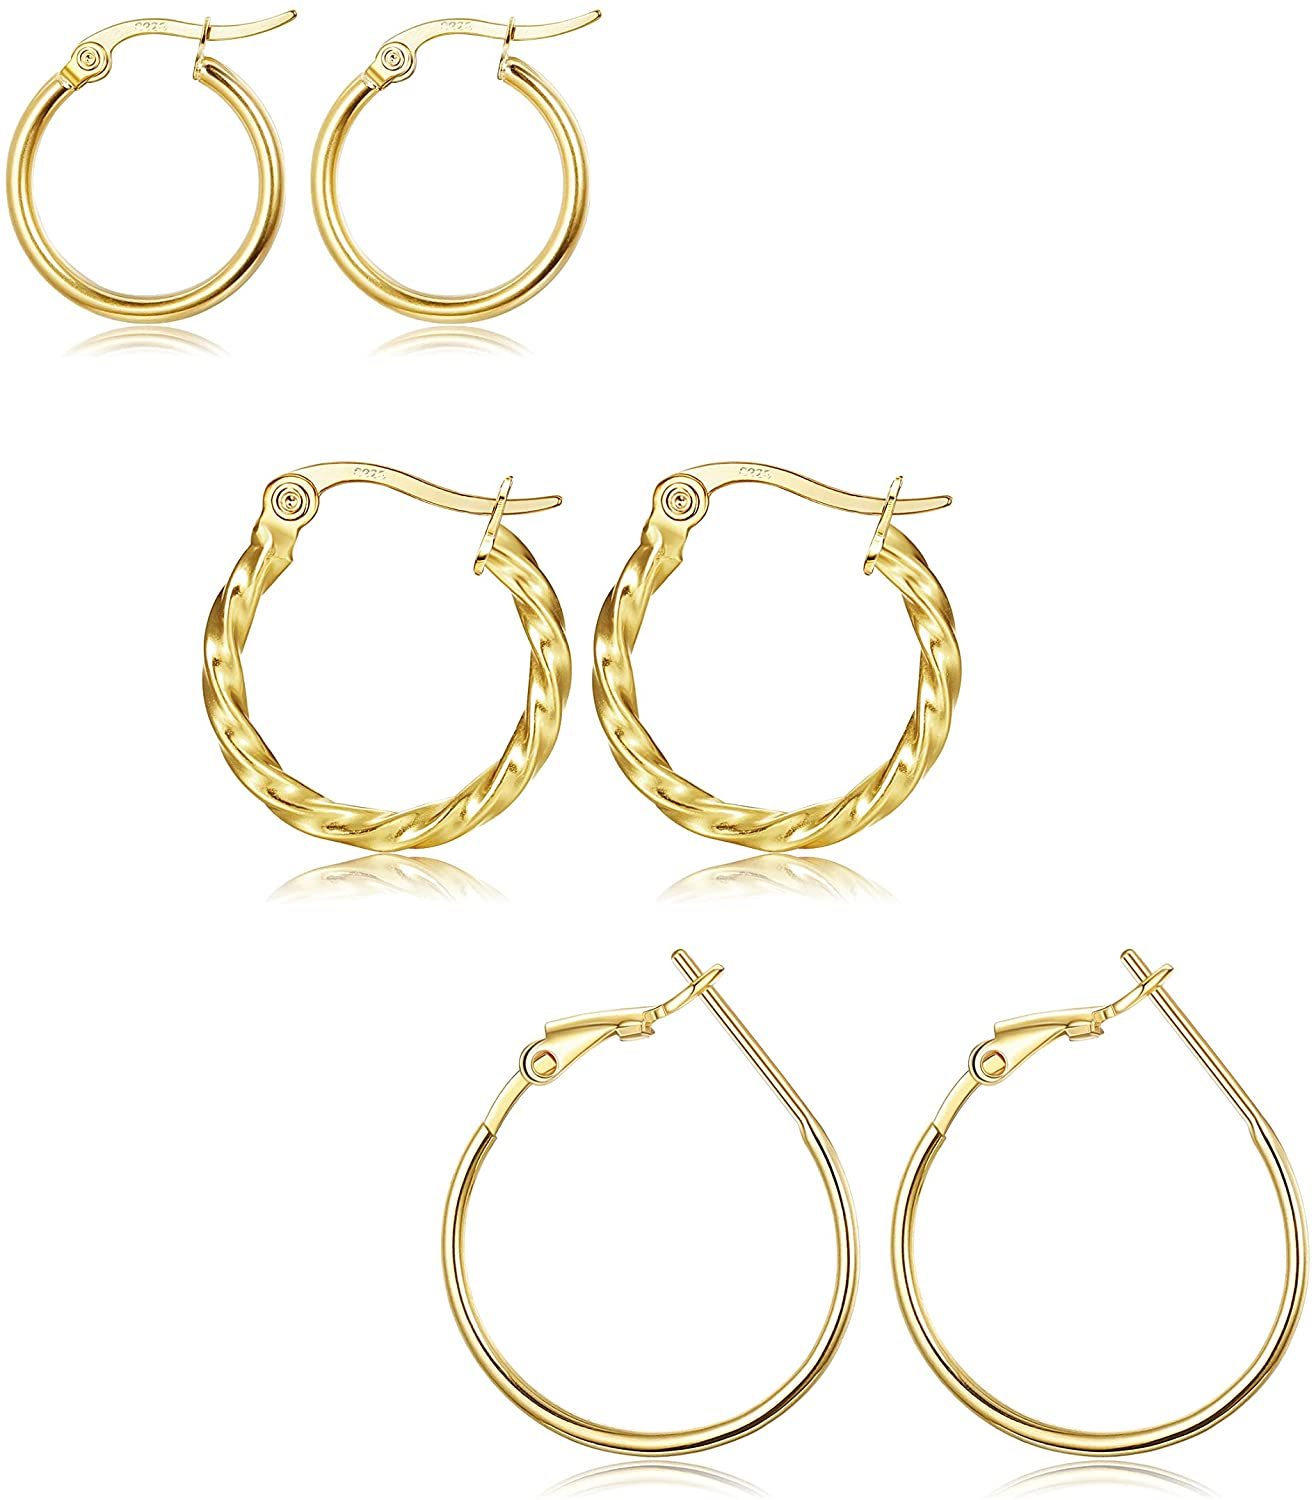 Sllaiss 3 Pairs Sterling Silver Small Hoop Earrings Set Twisted Click Top Hoop Earrings High Polished Round Earring for Women 10mm-15mm